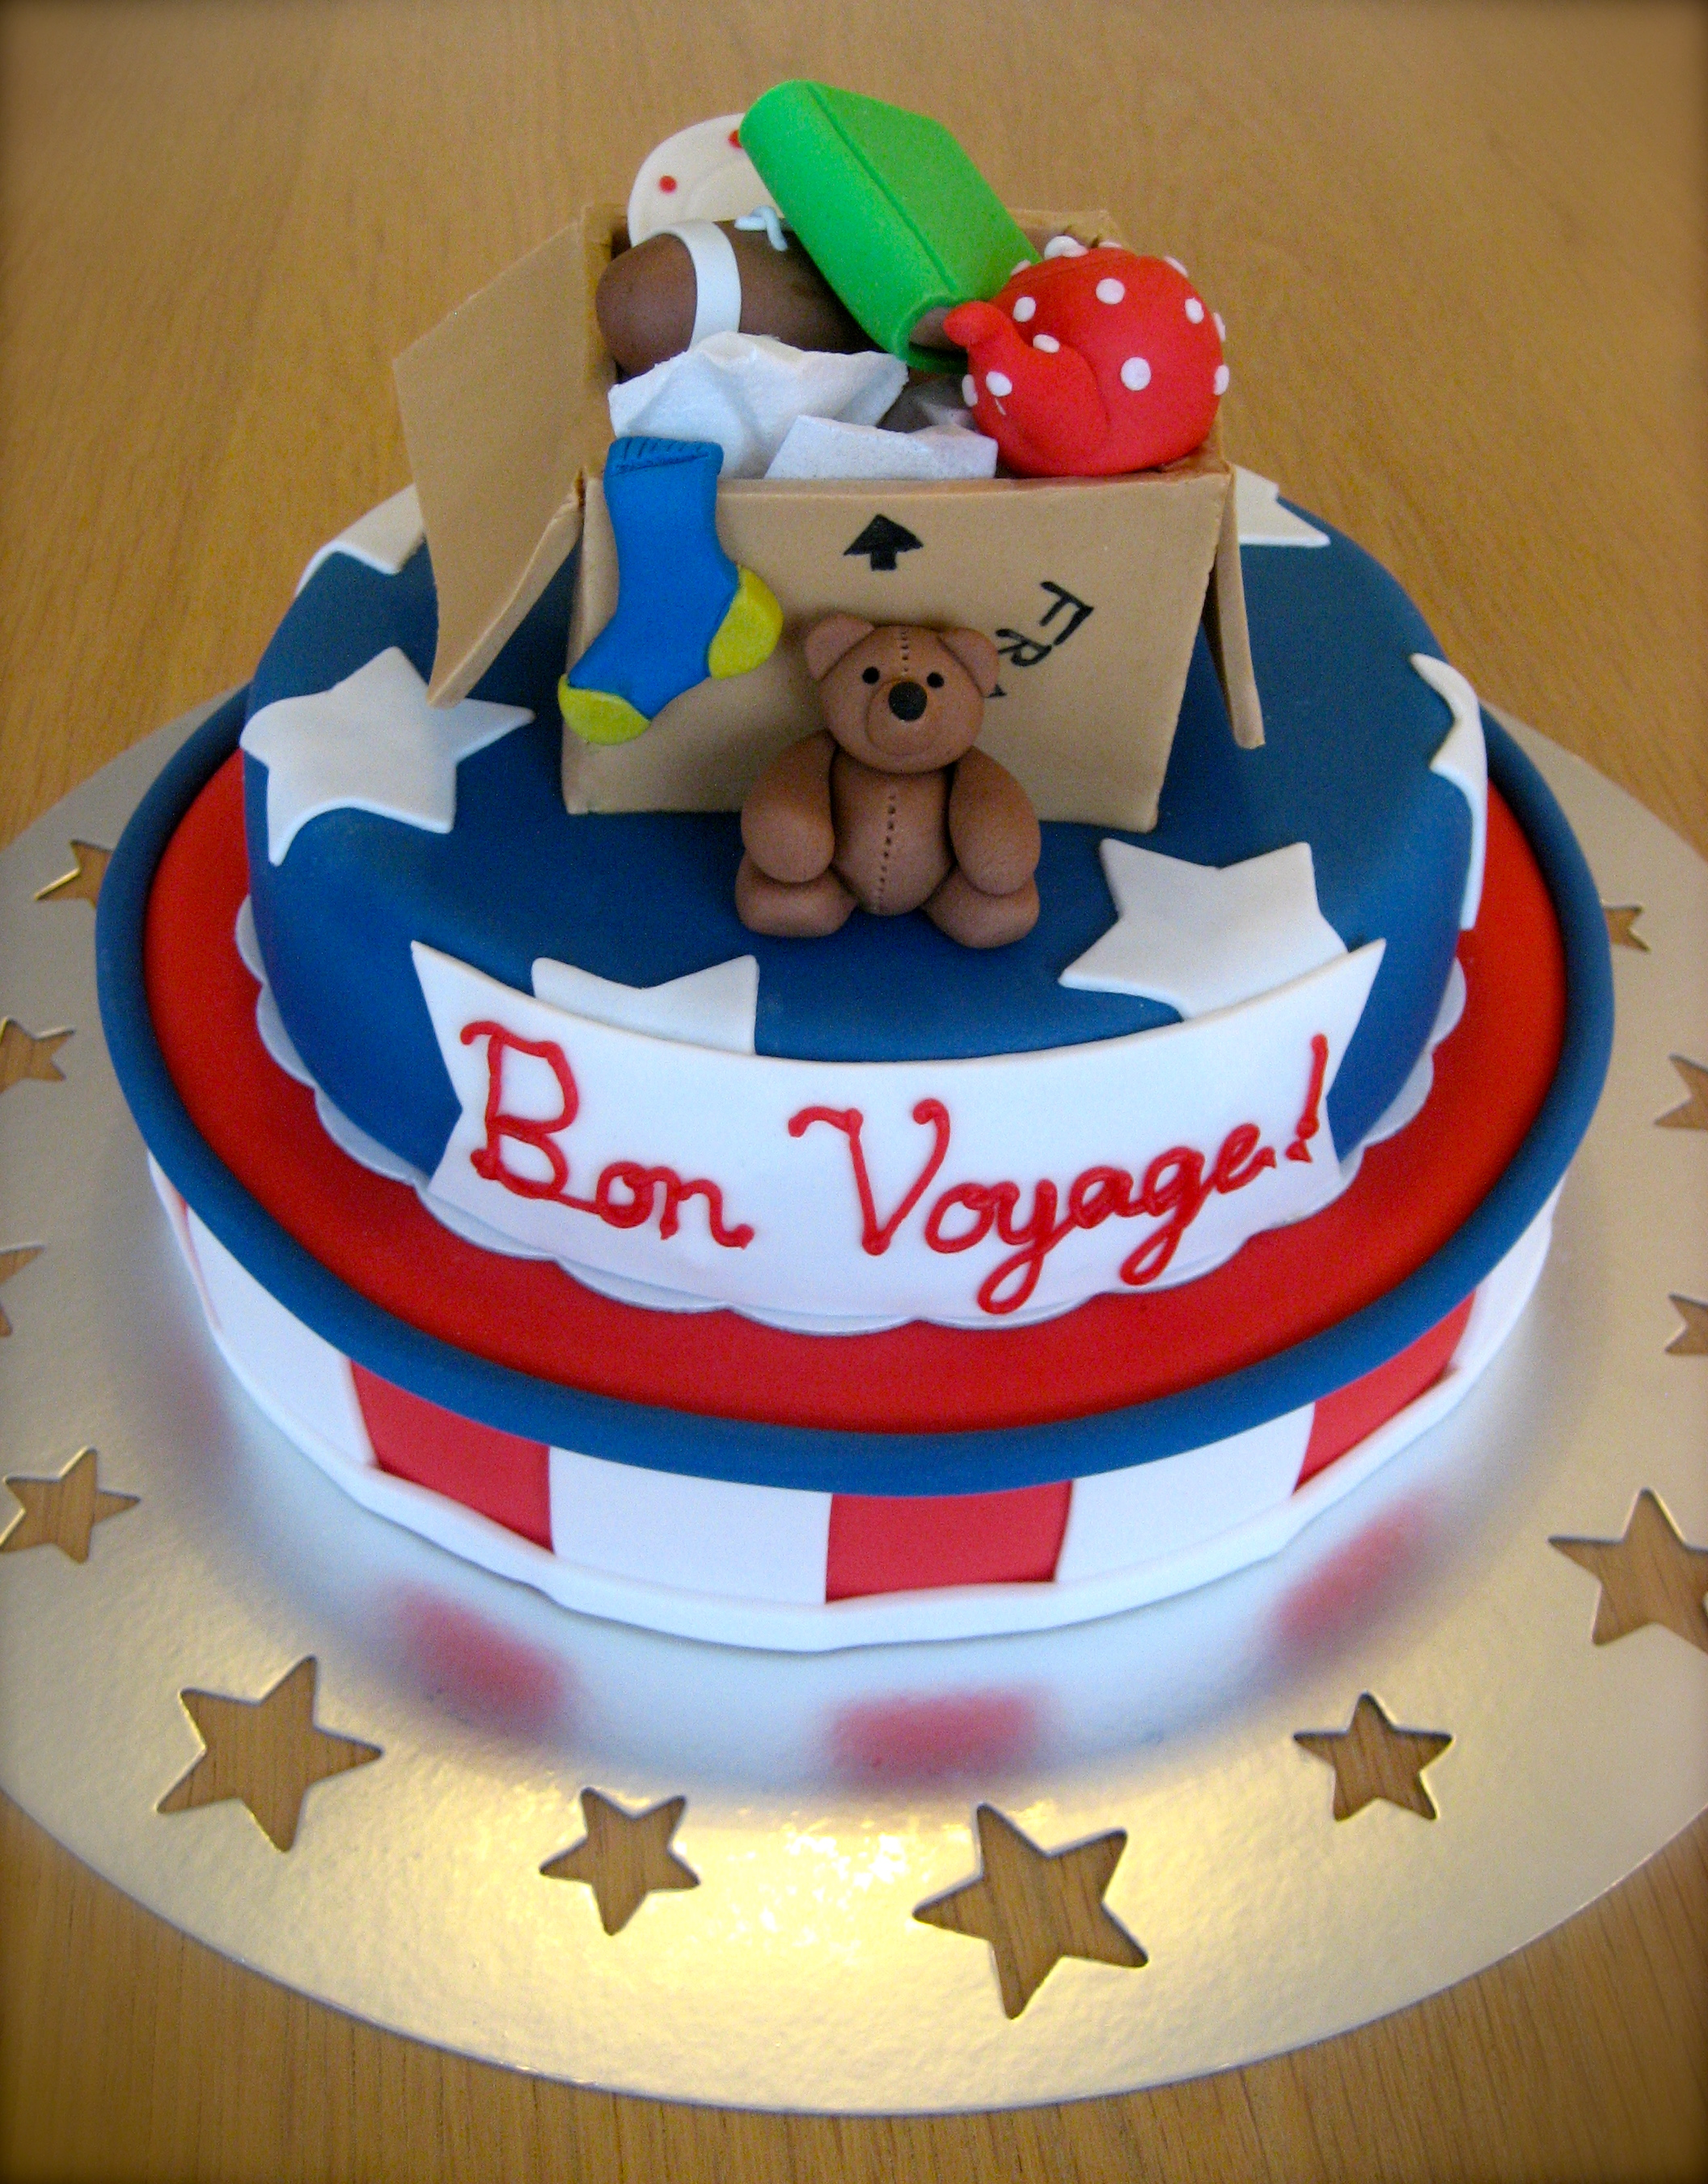 Cake Decorating Ideas Bon Voyage : Bon Voyage Cake The English Baker